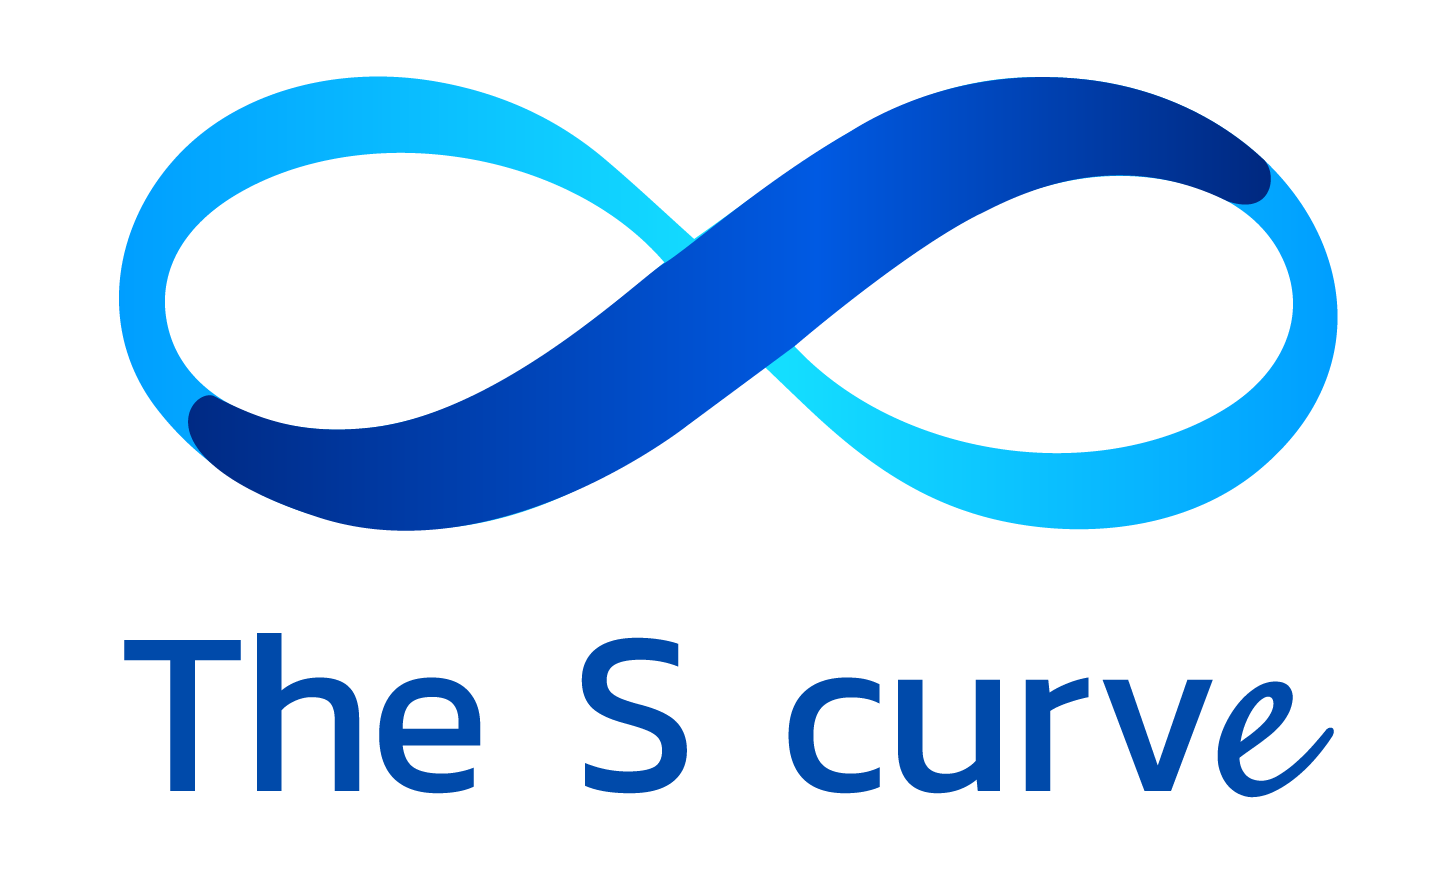 The S Curve Company Limited